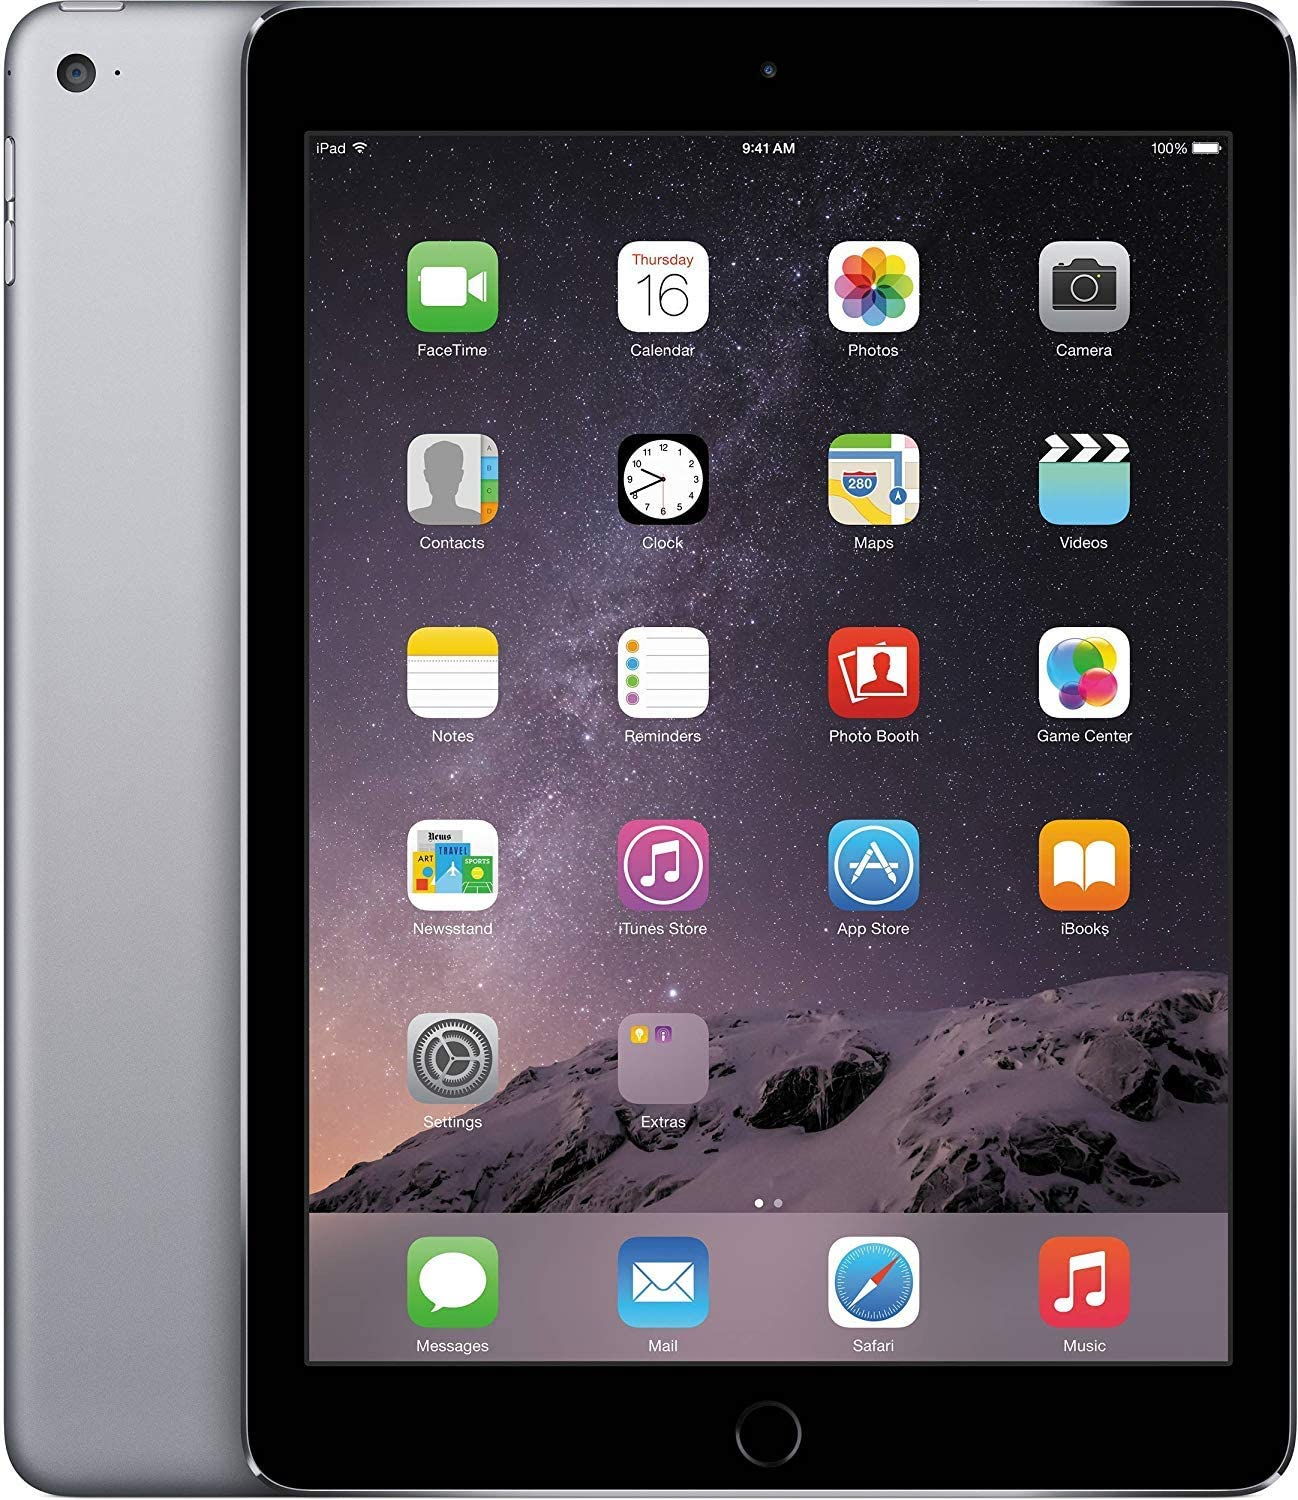 Apple MGL12LL/A iPad Air 2 Gray 9.7-Inch Retina Display, 16GB, Wi-Fi (Renewed)